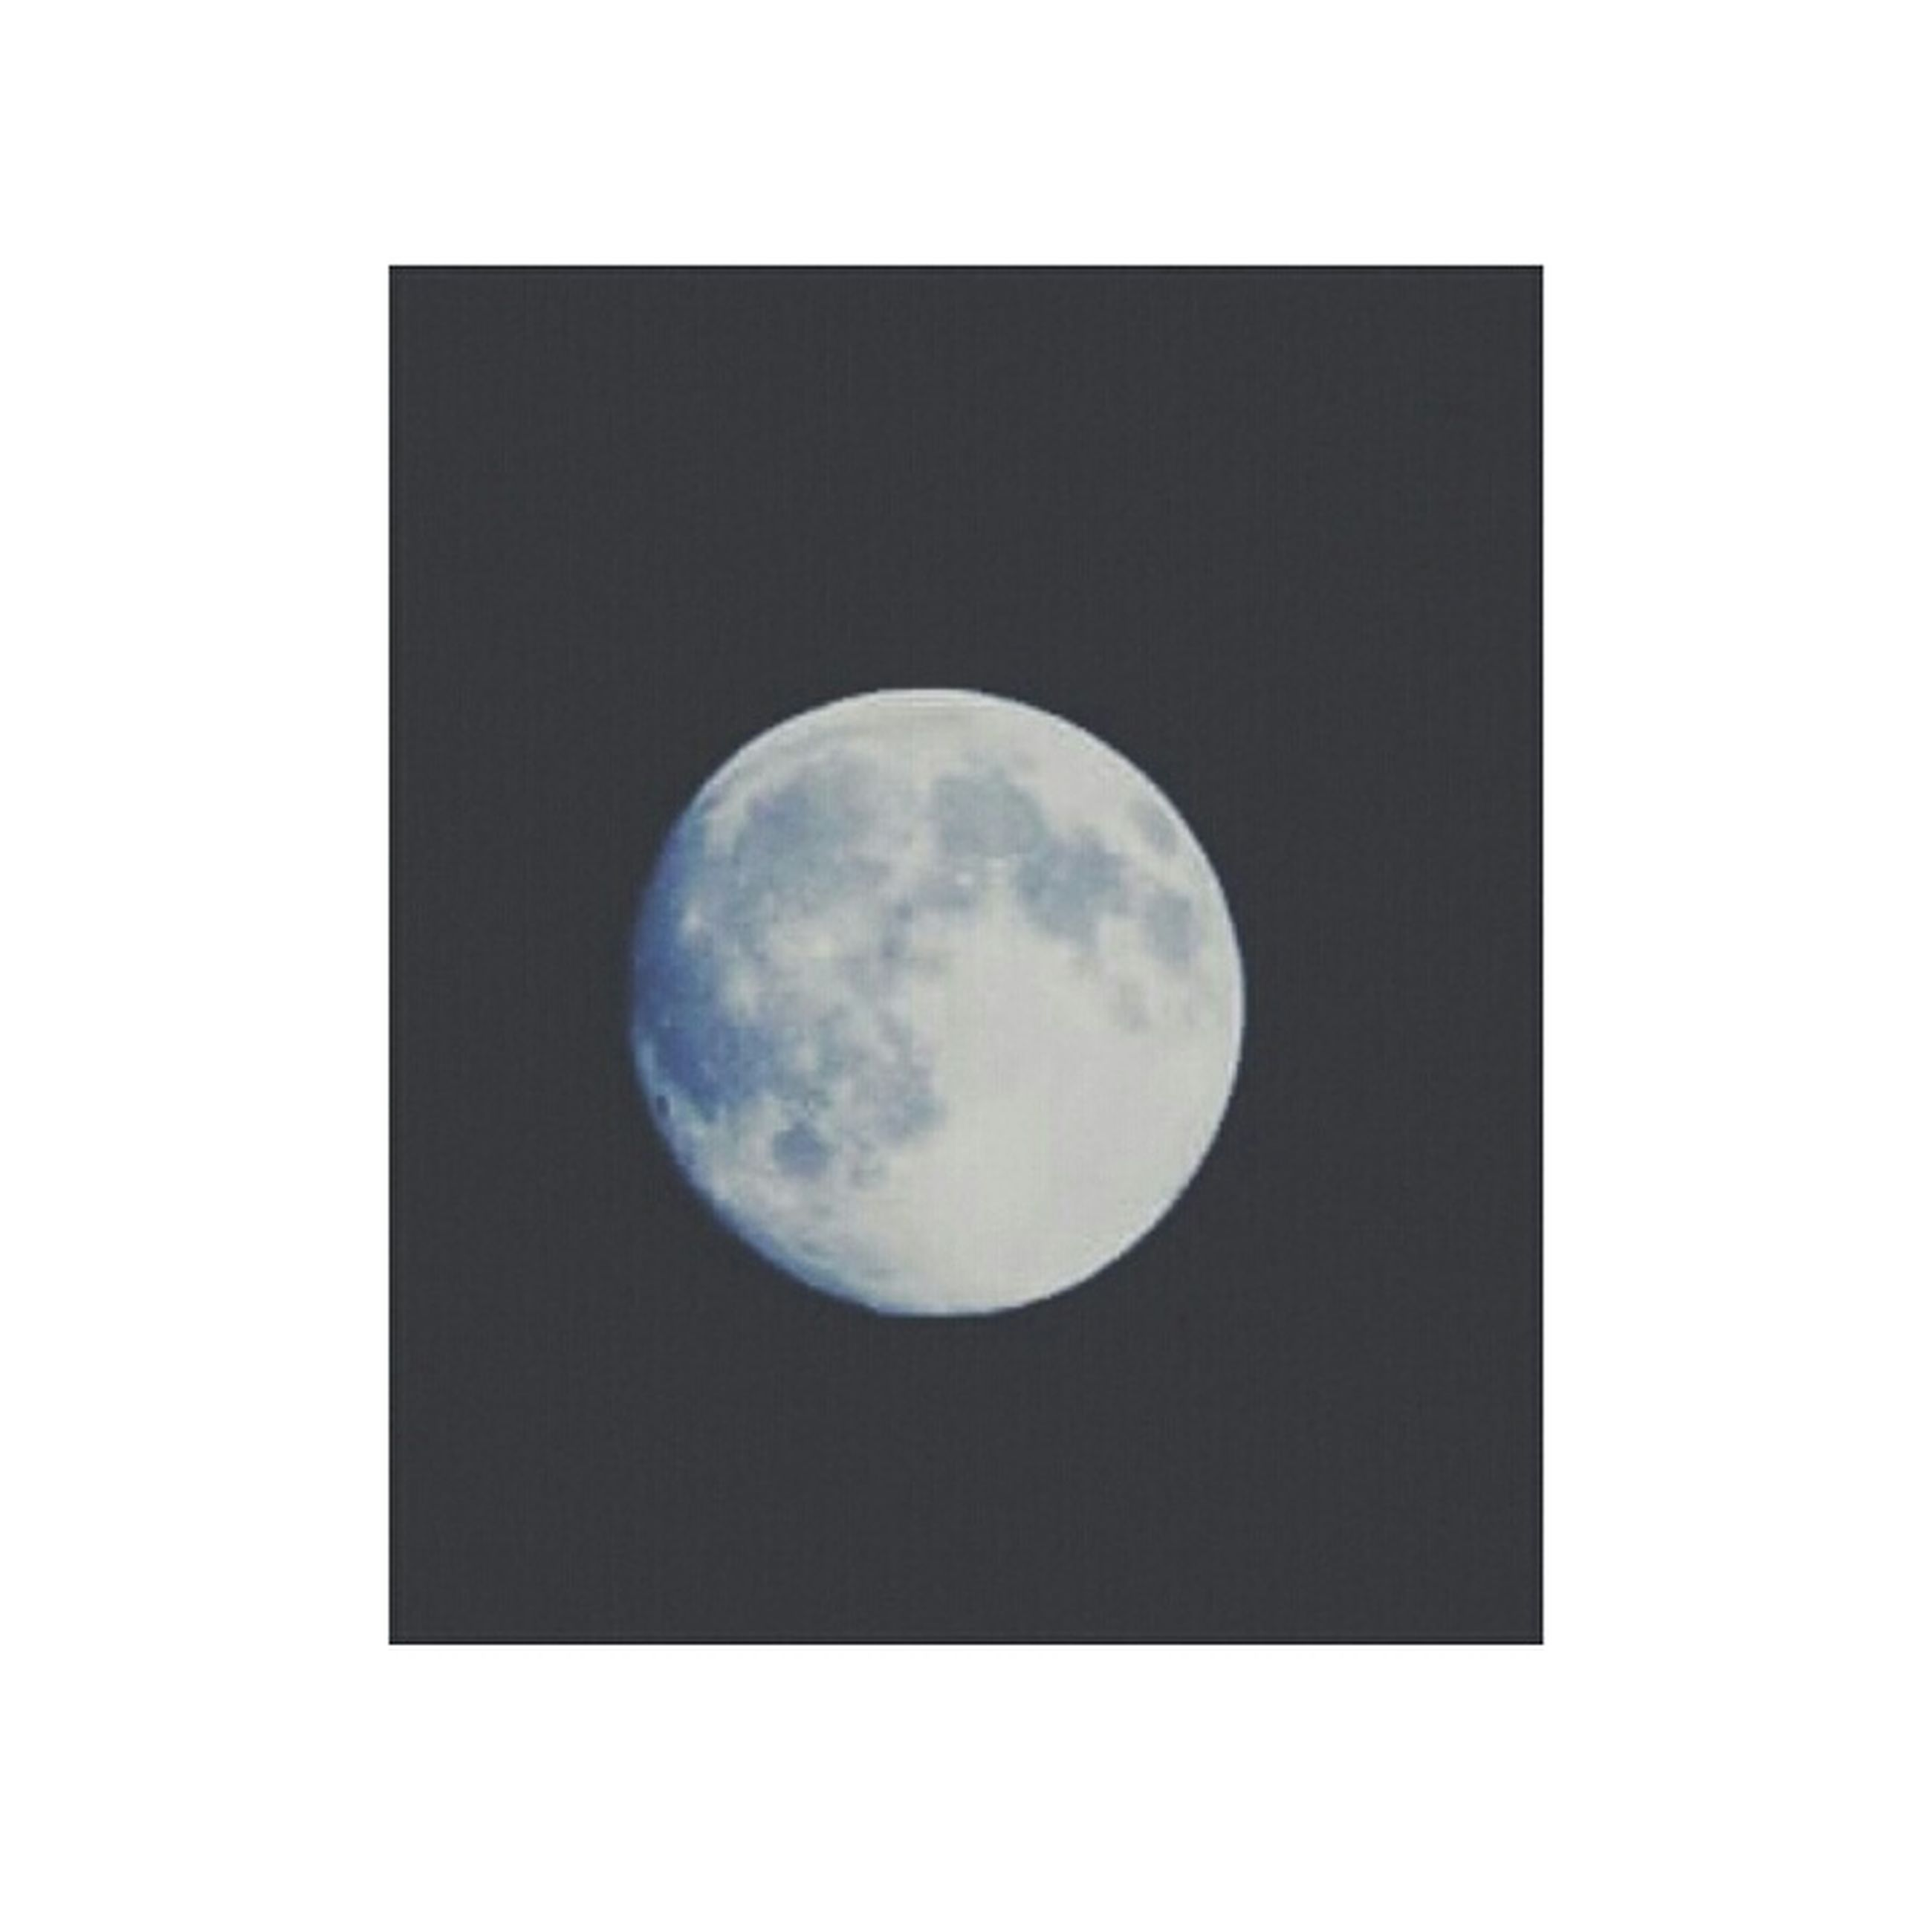 moon, copy space, astronomy, transfer print, circle, beauty in nature, planetary moon, nature, auto post production filter, tranquility, moon surface, full moon, tranquil scene, scenics, low angle view, sphere, discovery, clear sky, sky, no people